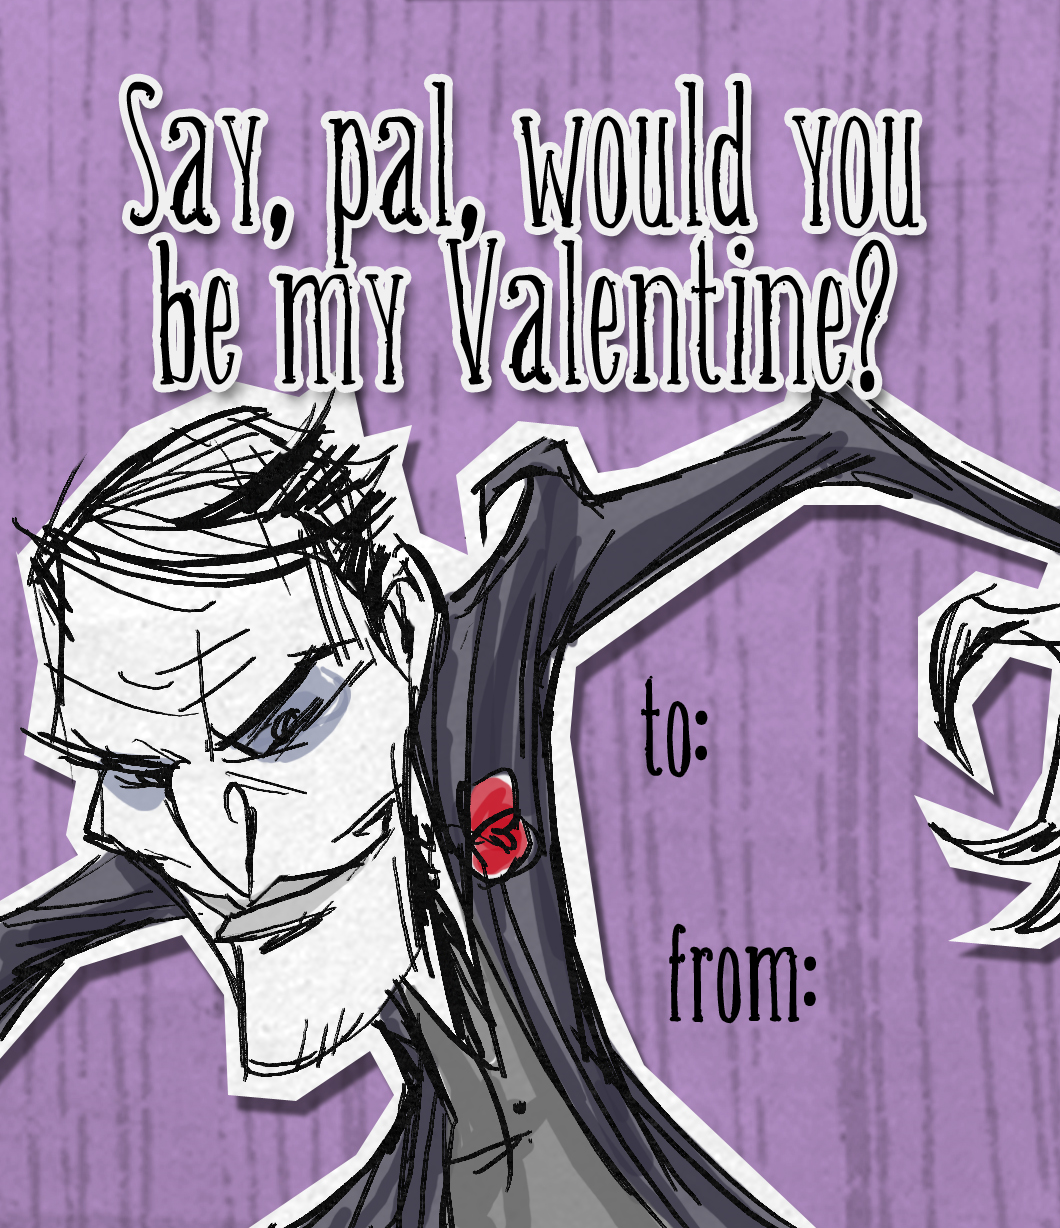 Don T Starve Maxwell Valentine Videogame Art Don T Starve